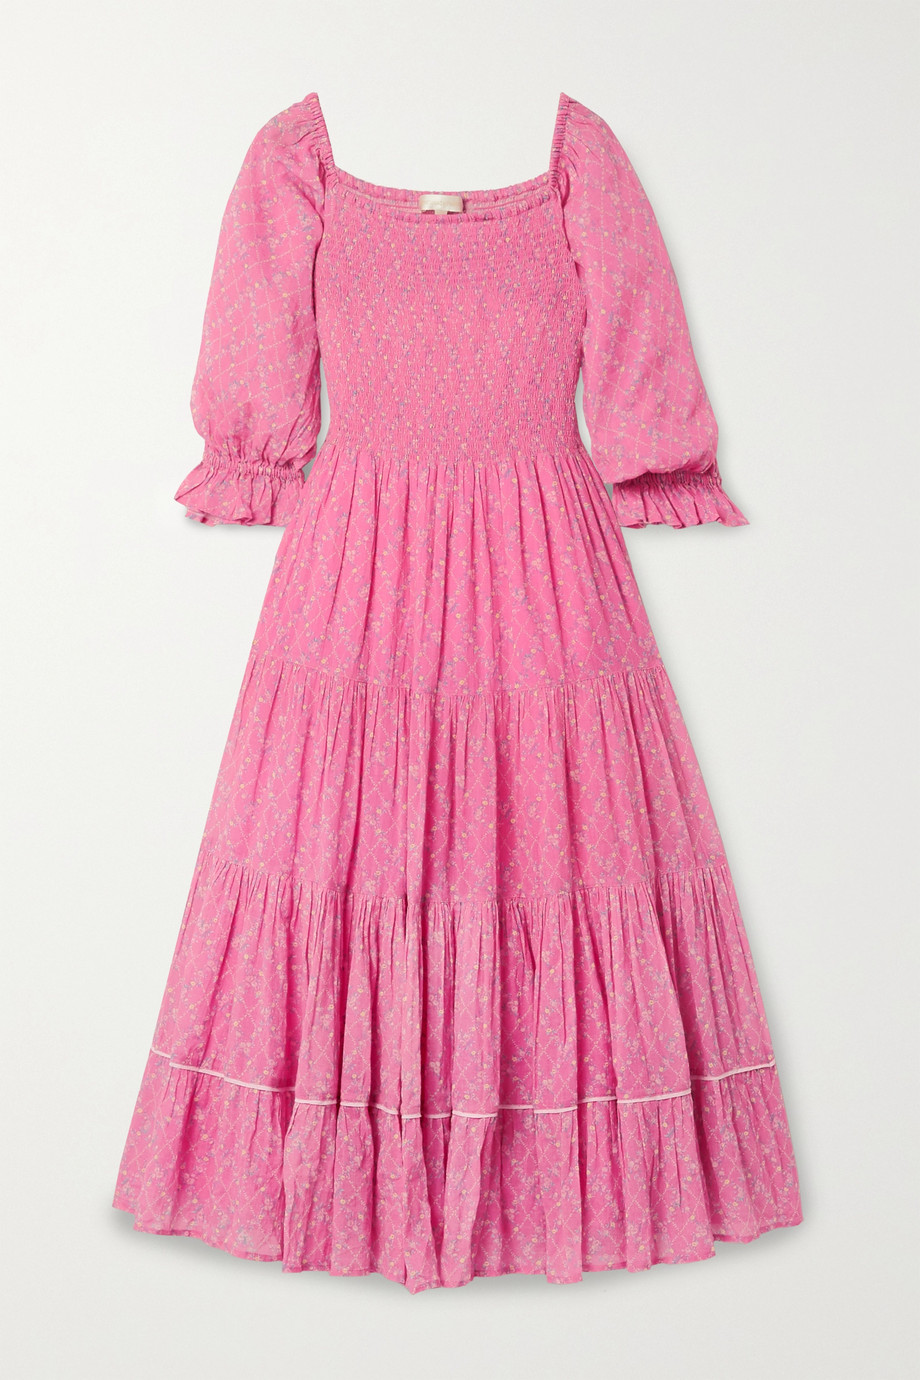 Loveshackfancy Rigby dress pink.